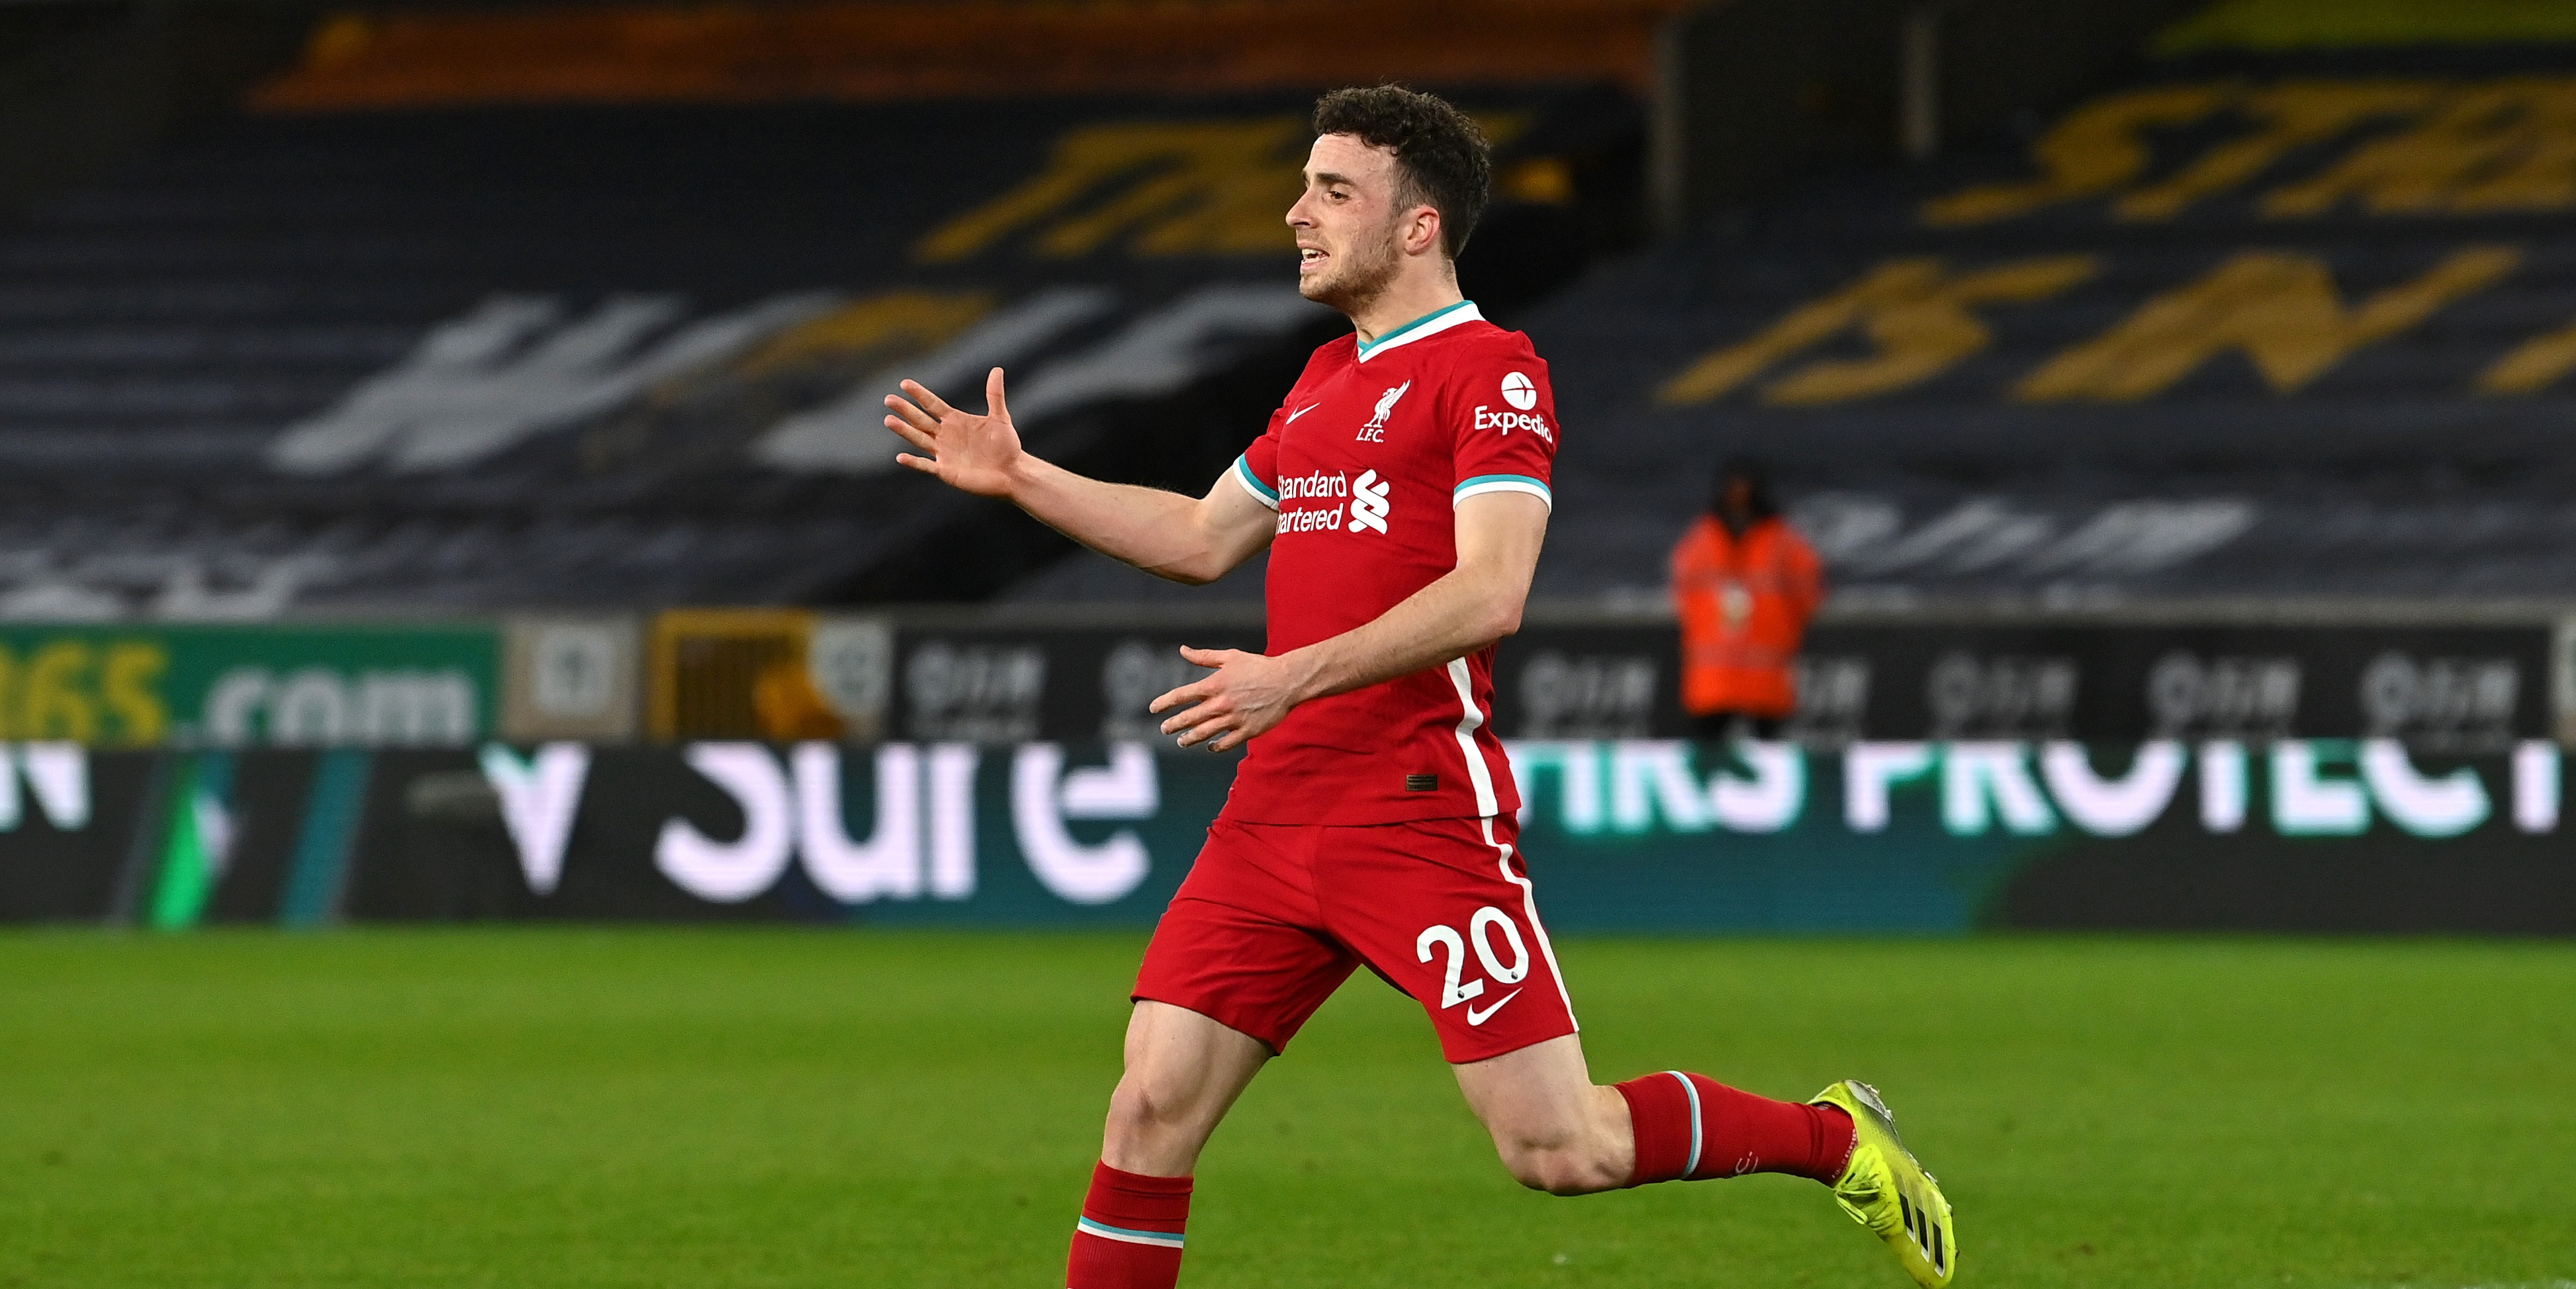 Diogo Jota – the Portuguese dynamo who could save Liverpool's season